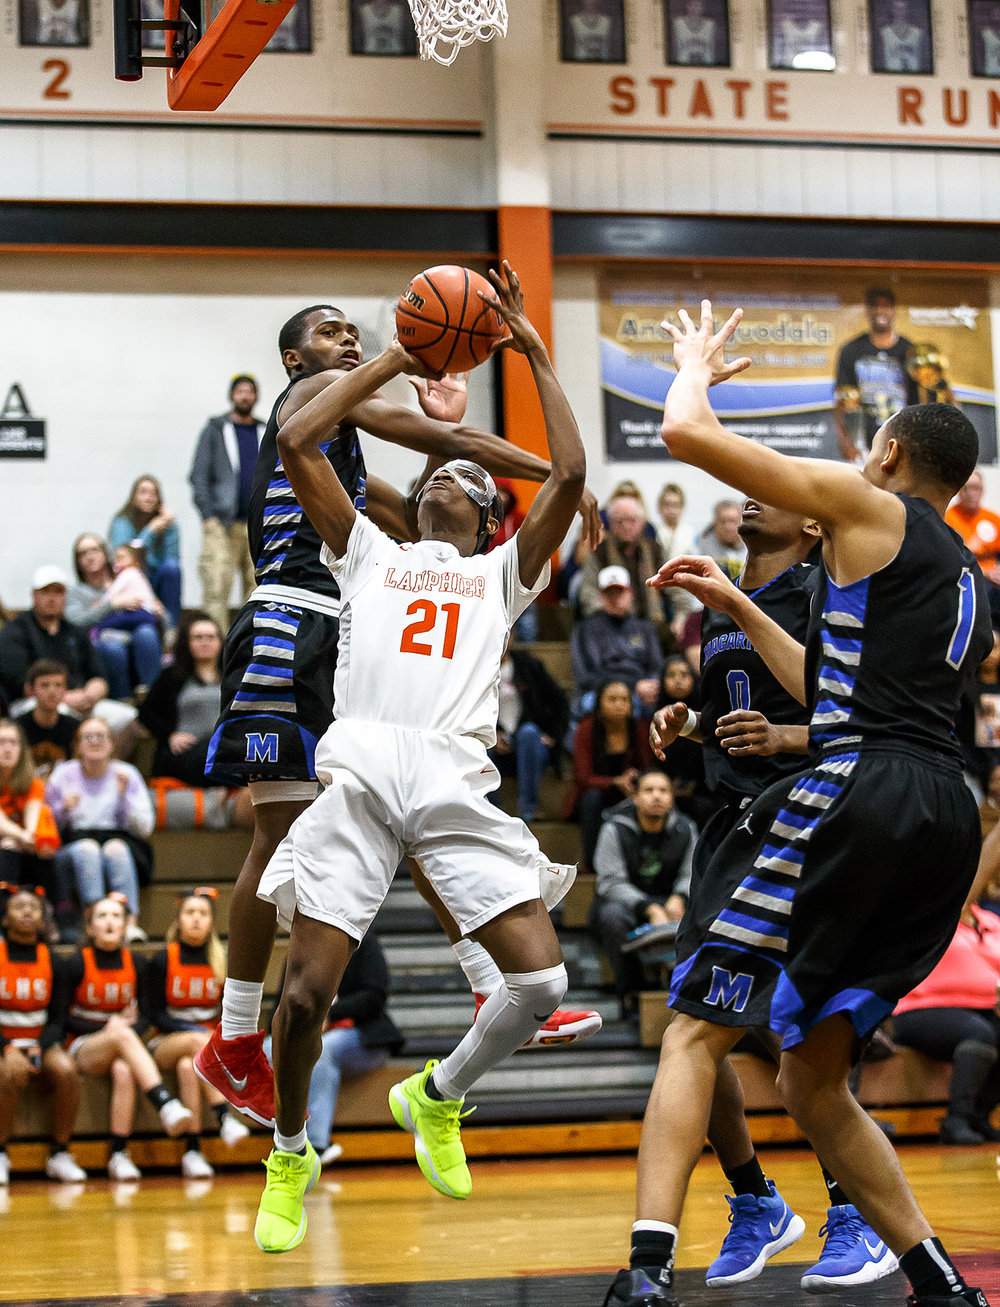 Lanphier's James Jones (21) puts up a shot to tie the game 59-59 against Decatur MacArthur's Armon Brummett (2) late in the second half at Lober-Nika gymnasium, Saturday, Feb. 10, 2018, in Springfield, Ill. [Justin L. Fowler/The State Journal-Register]